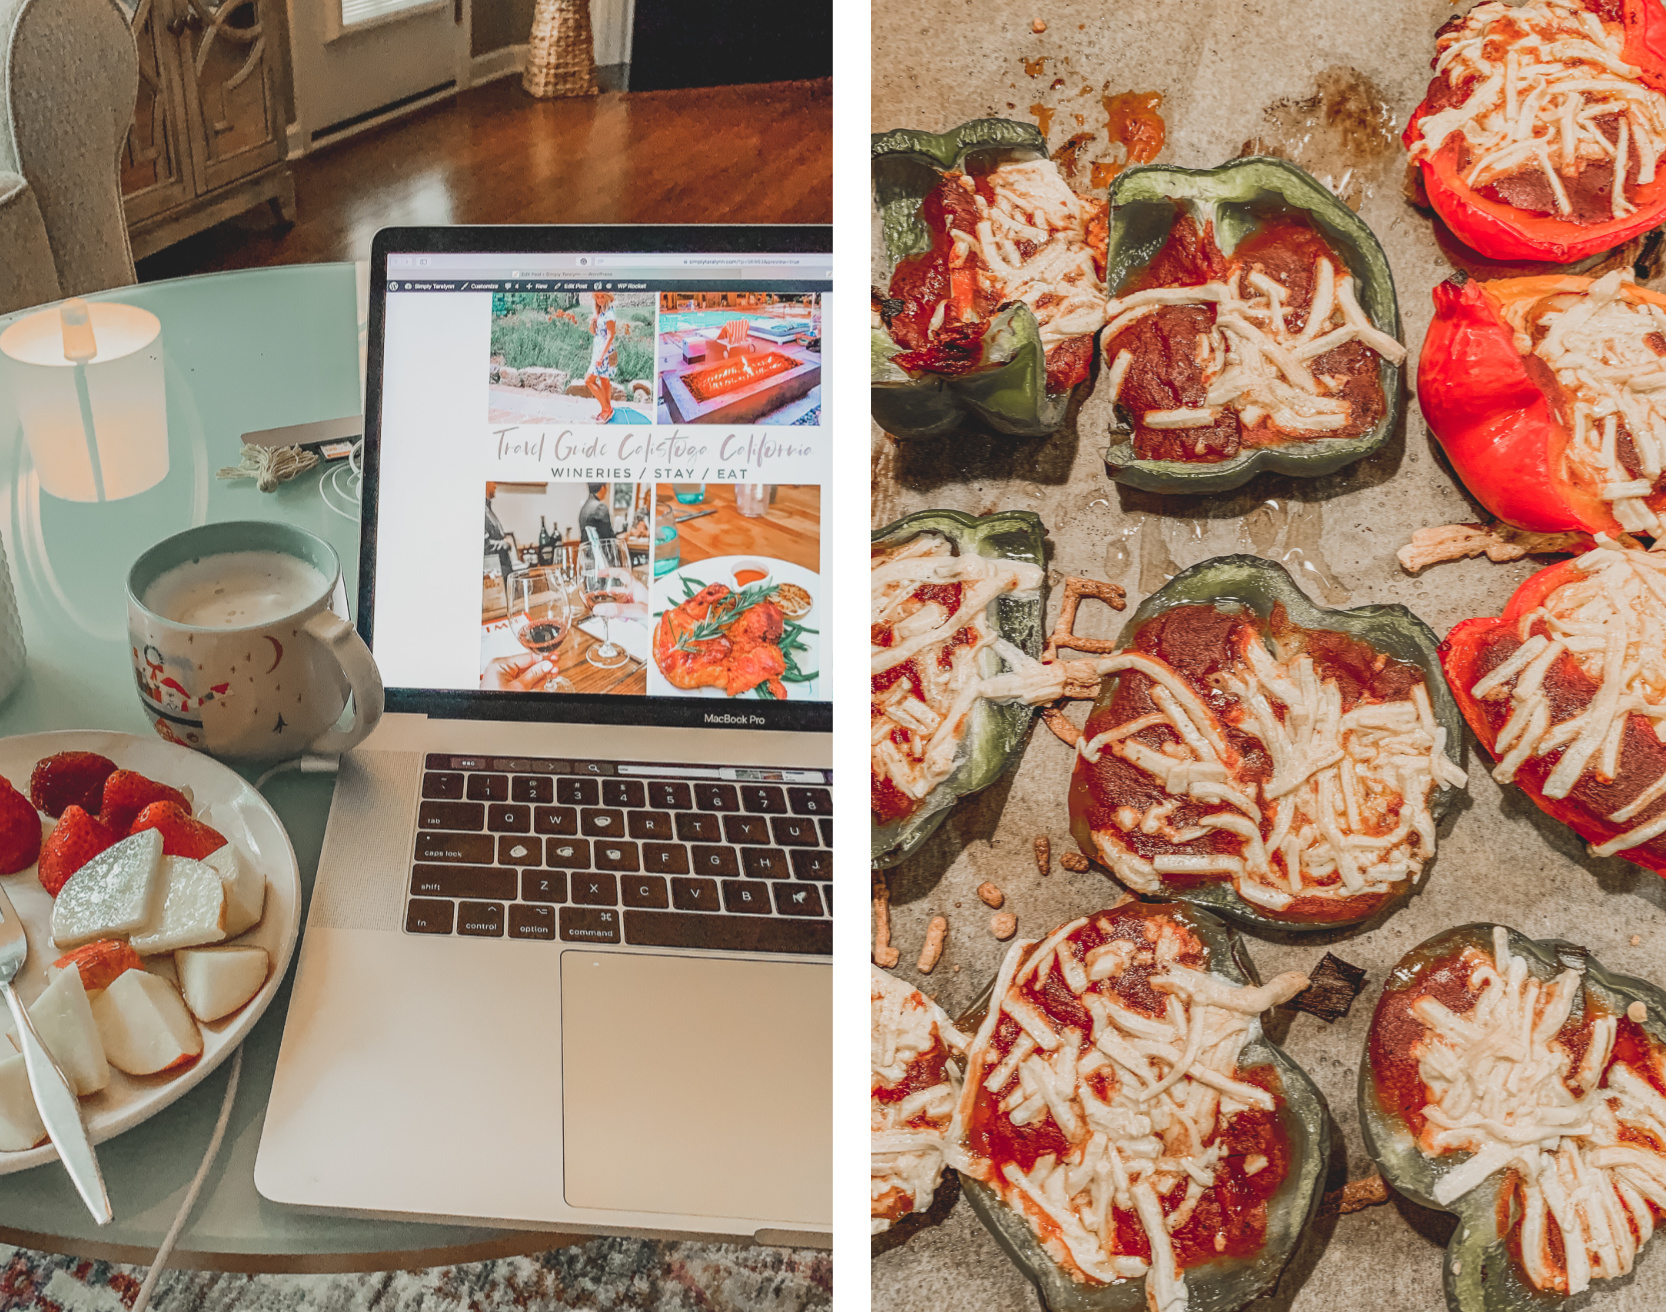 bell pepper pizzas, blogger, blogging, snacking, apples, peanut butter